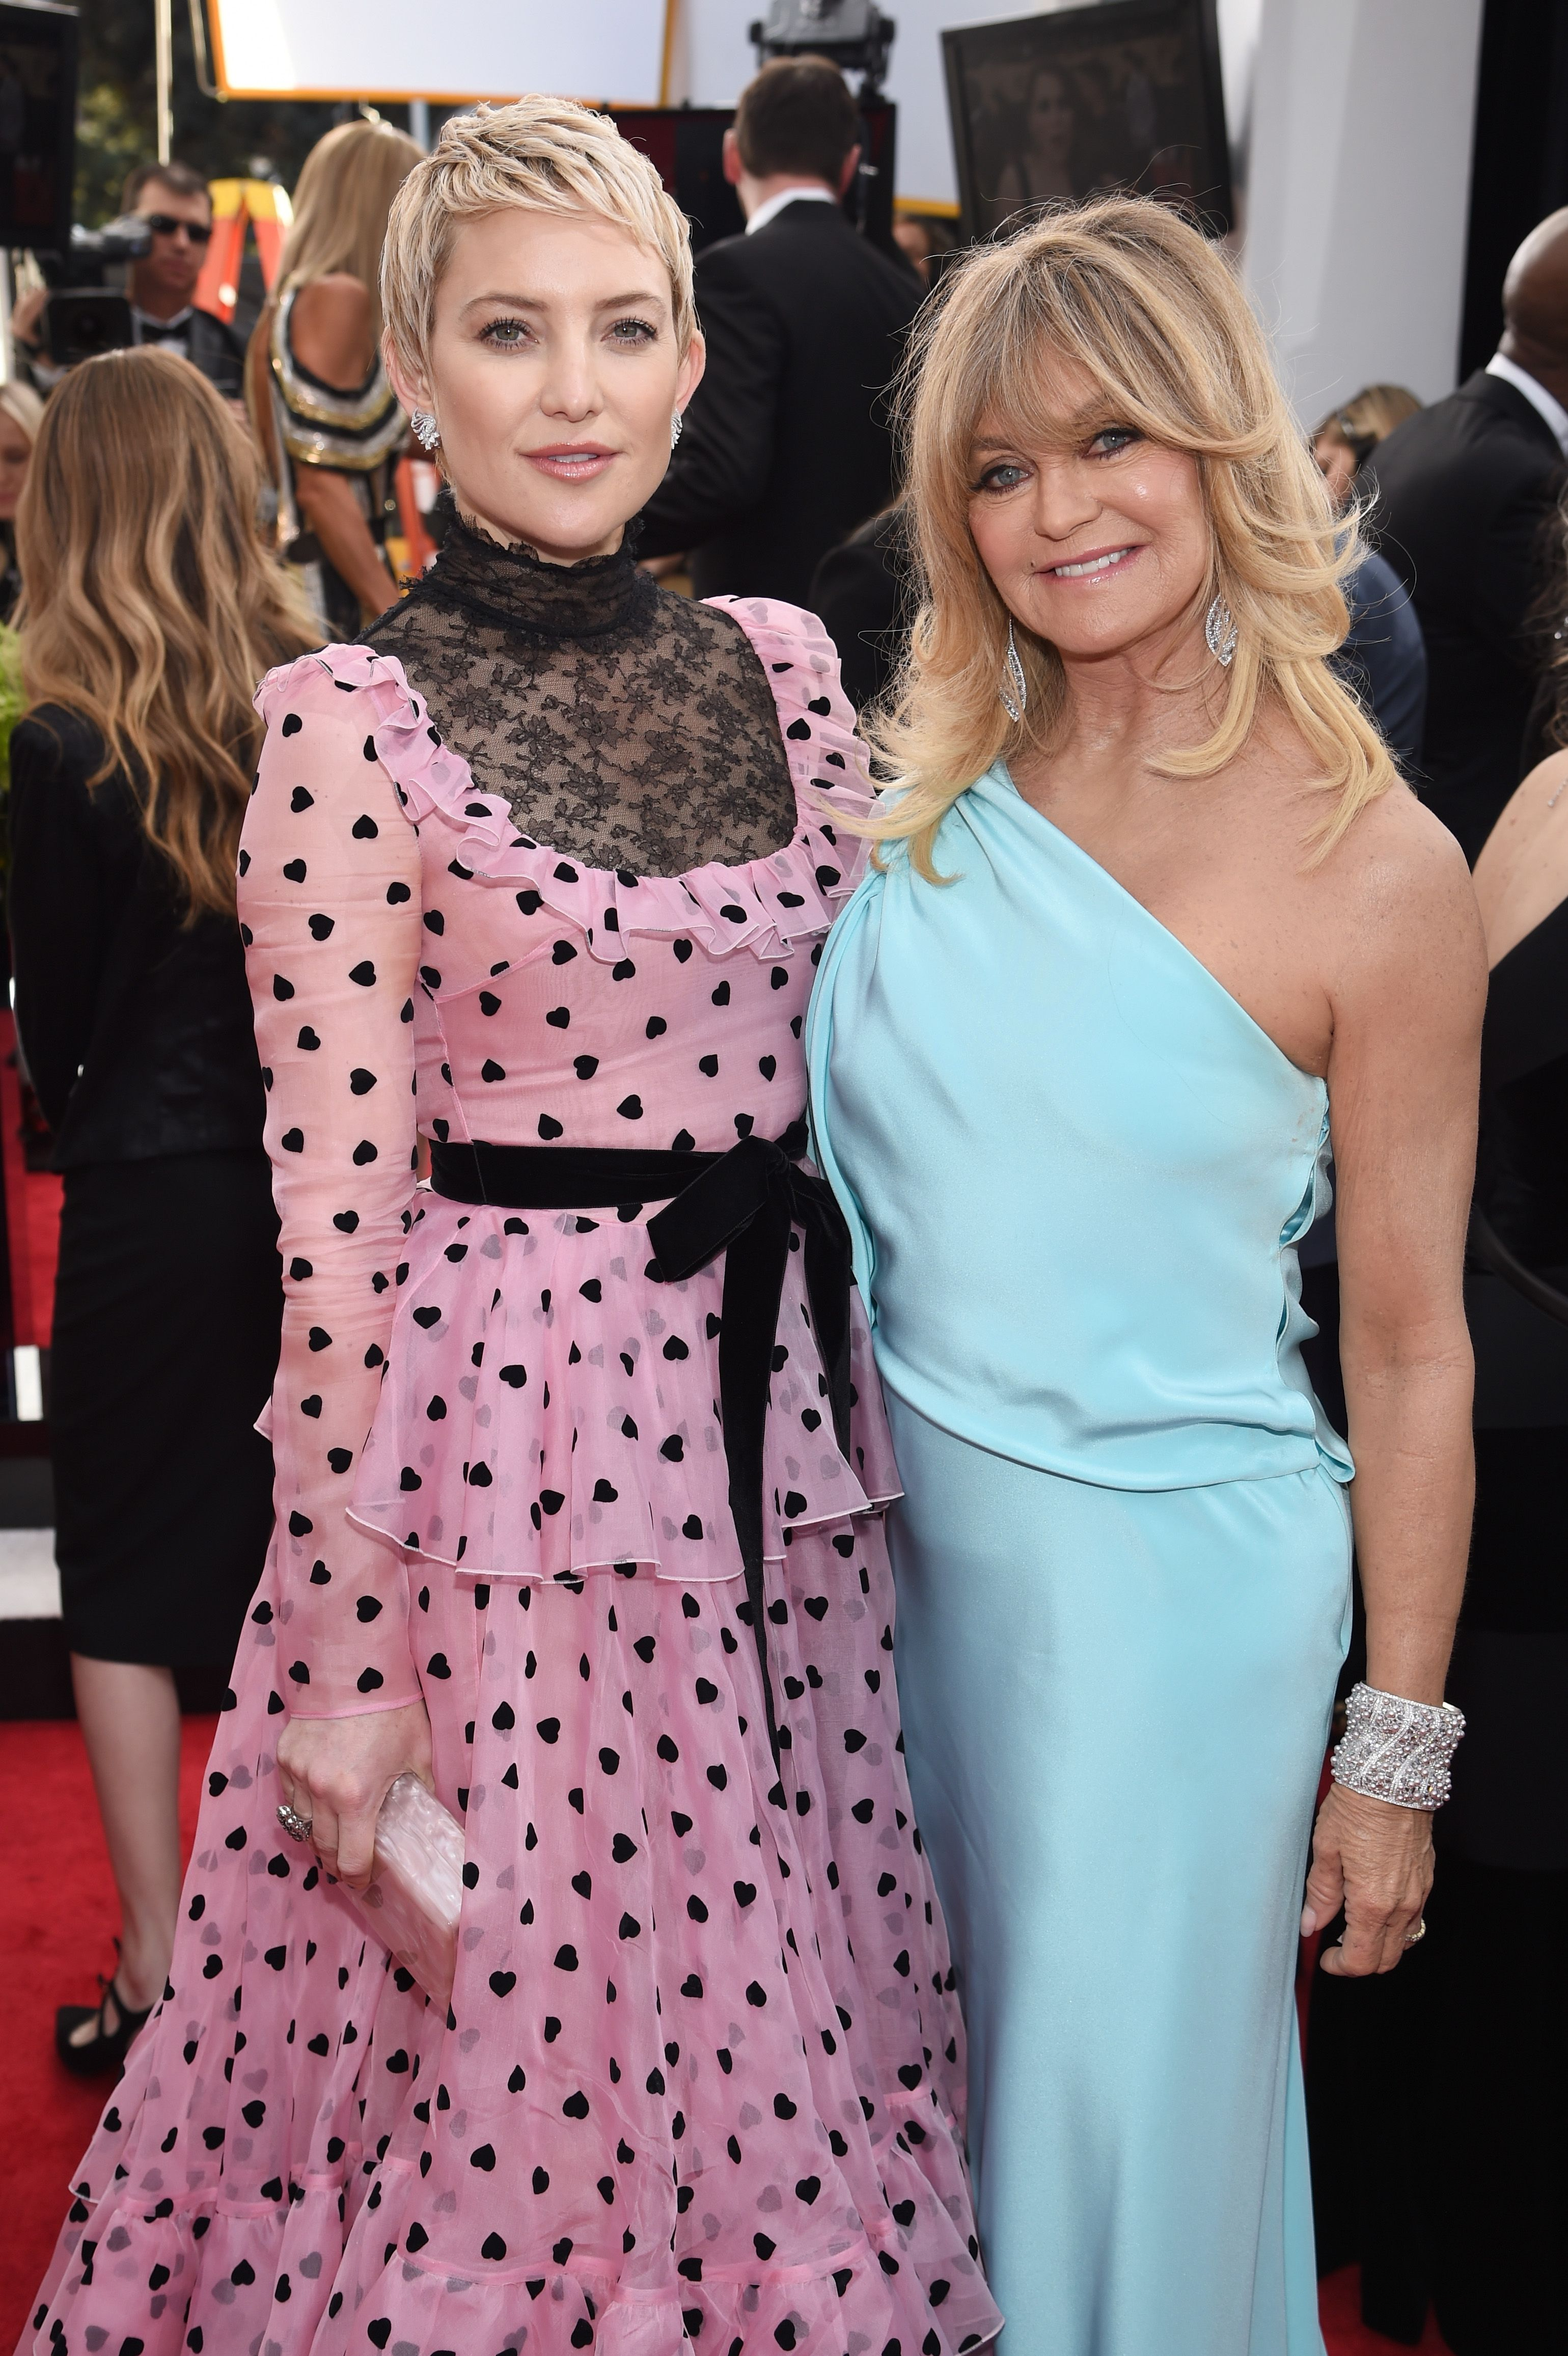 Kate Hudson and Goldie Hawn at the 24th Annual Screen Actors Guild Awards at The Shrine Auditorium on January 21, 2018   Photo: Getty Images